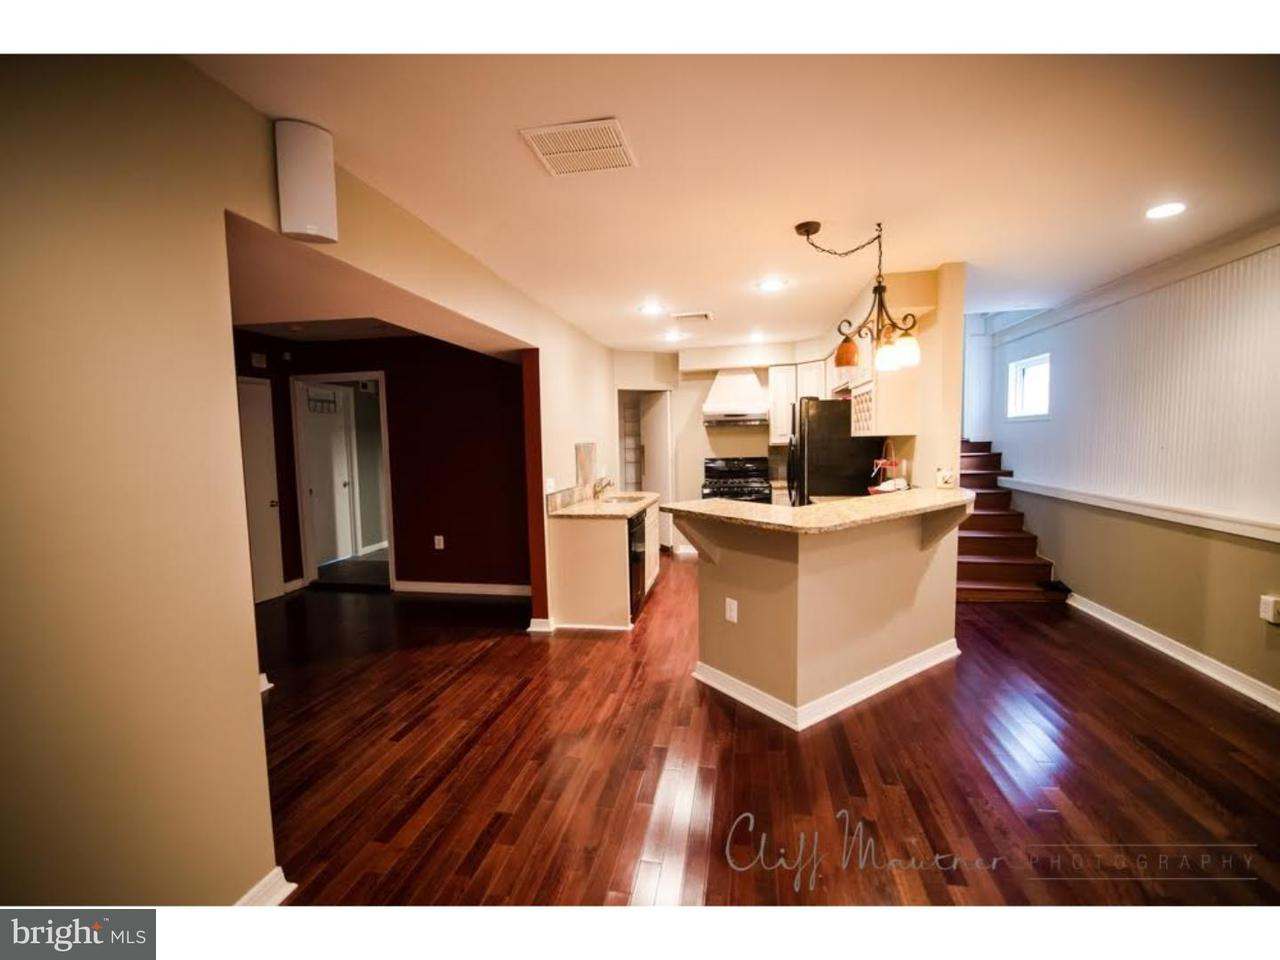 Single Family Home for Rent at 516 N HADDON Avenue Haddonfield, New Jersey 08033 United States